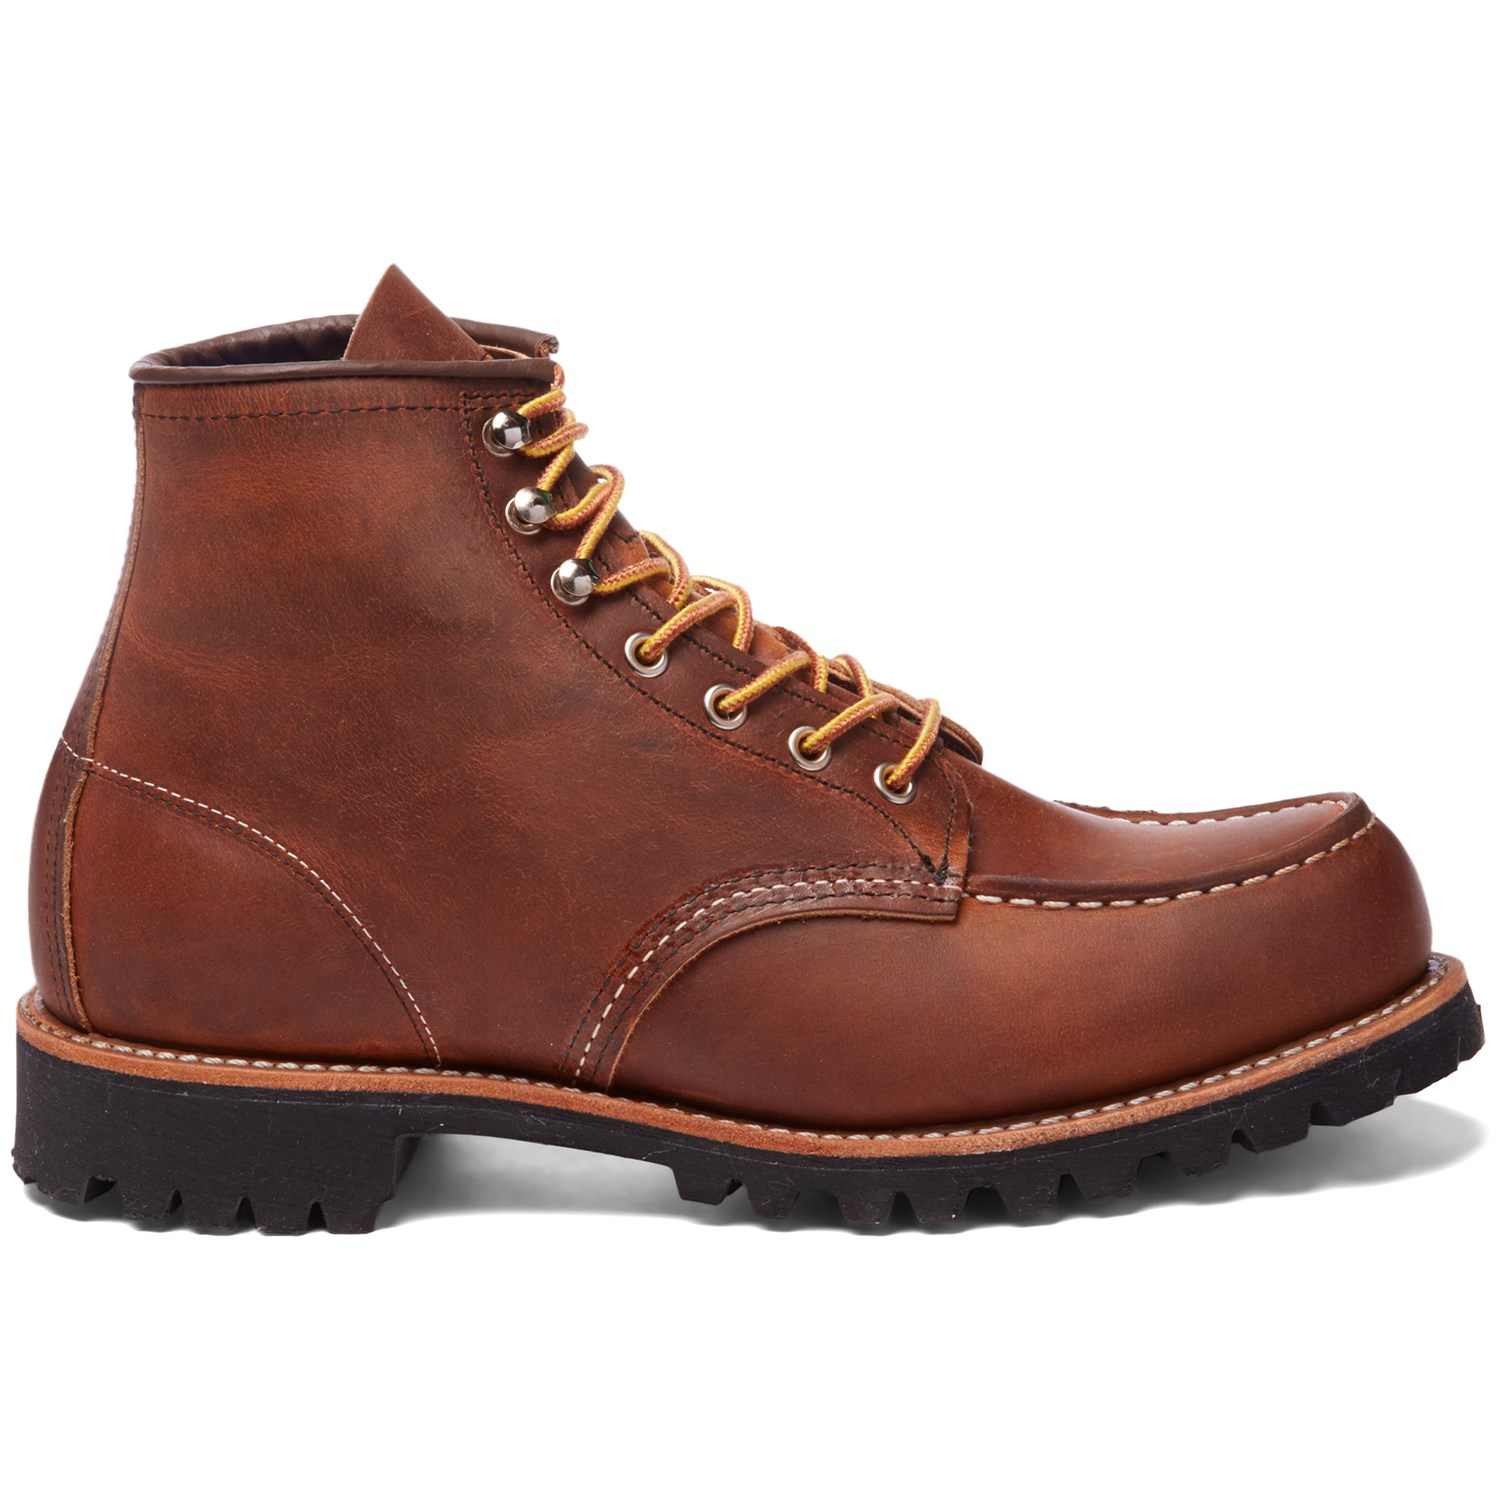 Red Wing Boots Store Locator - Boot Hto